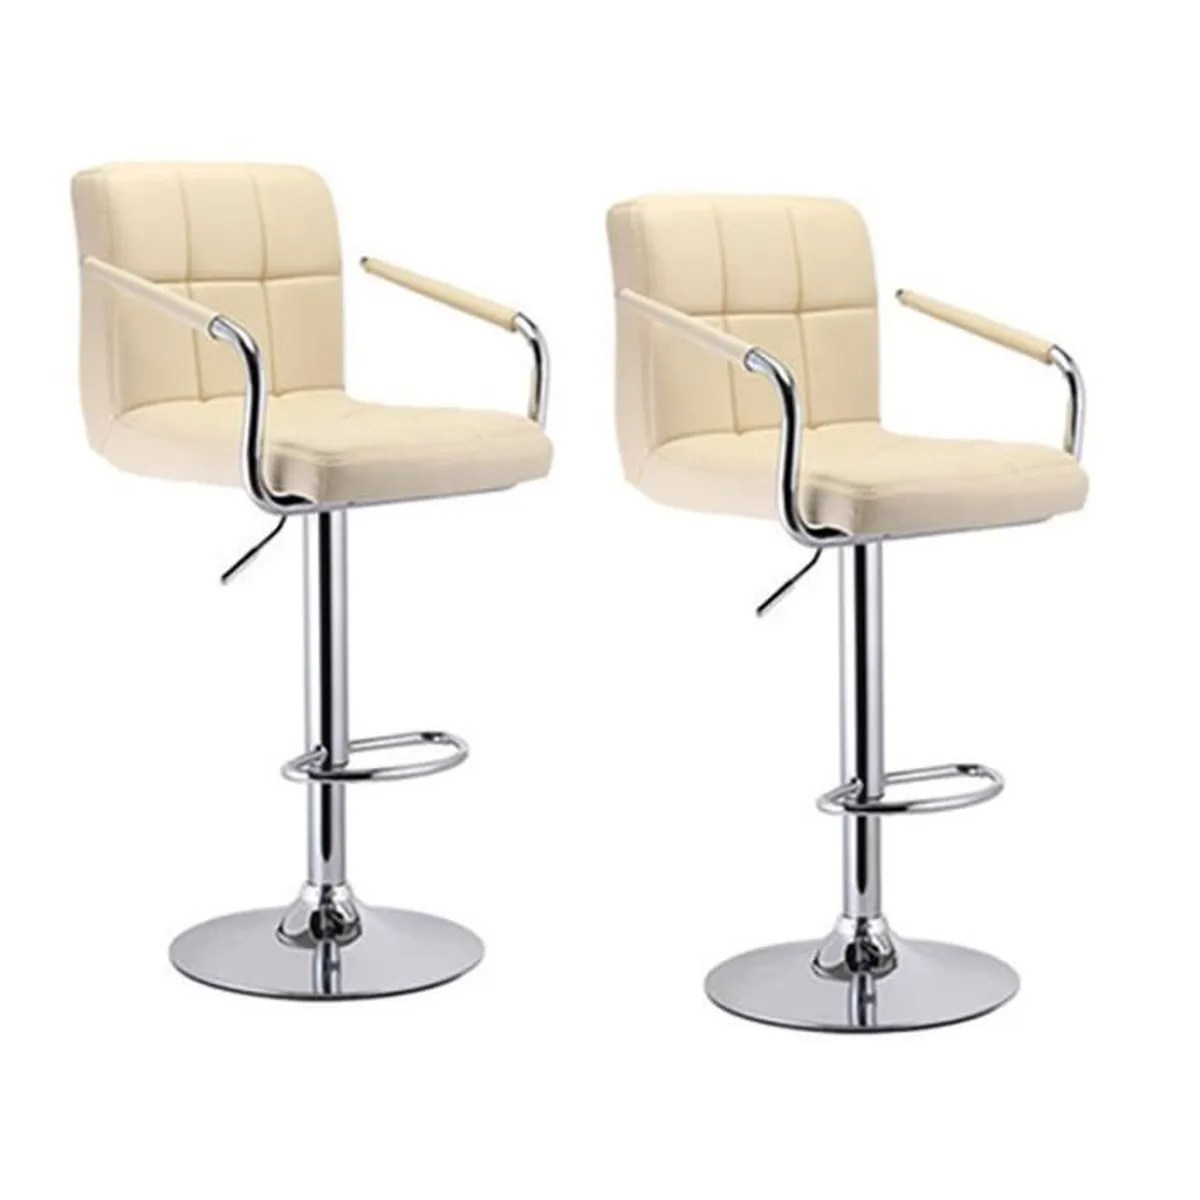 Tabourets De Bar Z Lot De 2 Tabouret De Bar Beige Tabouret De Chaise Chrome Hauteur Réglable